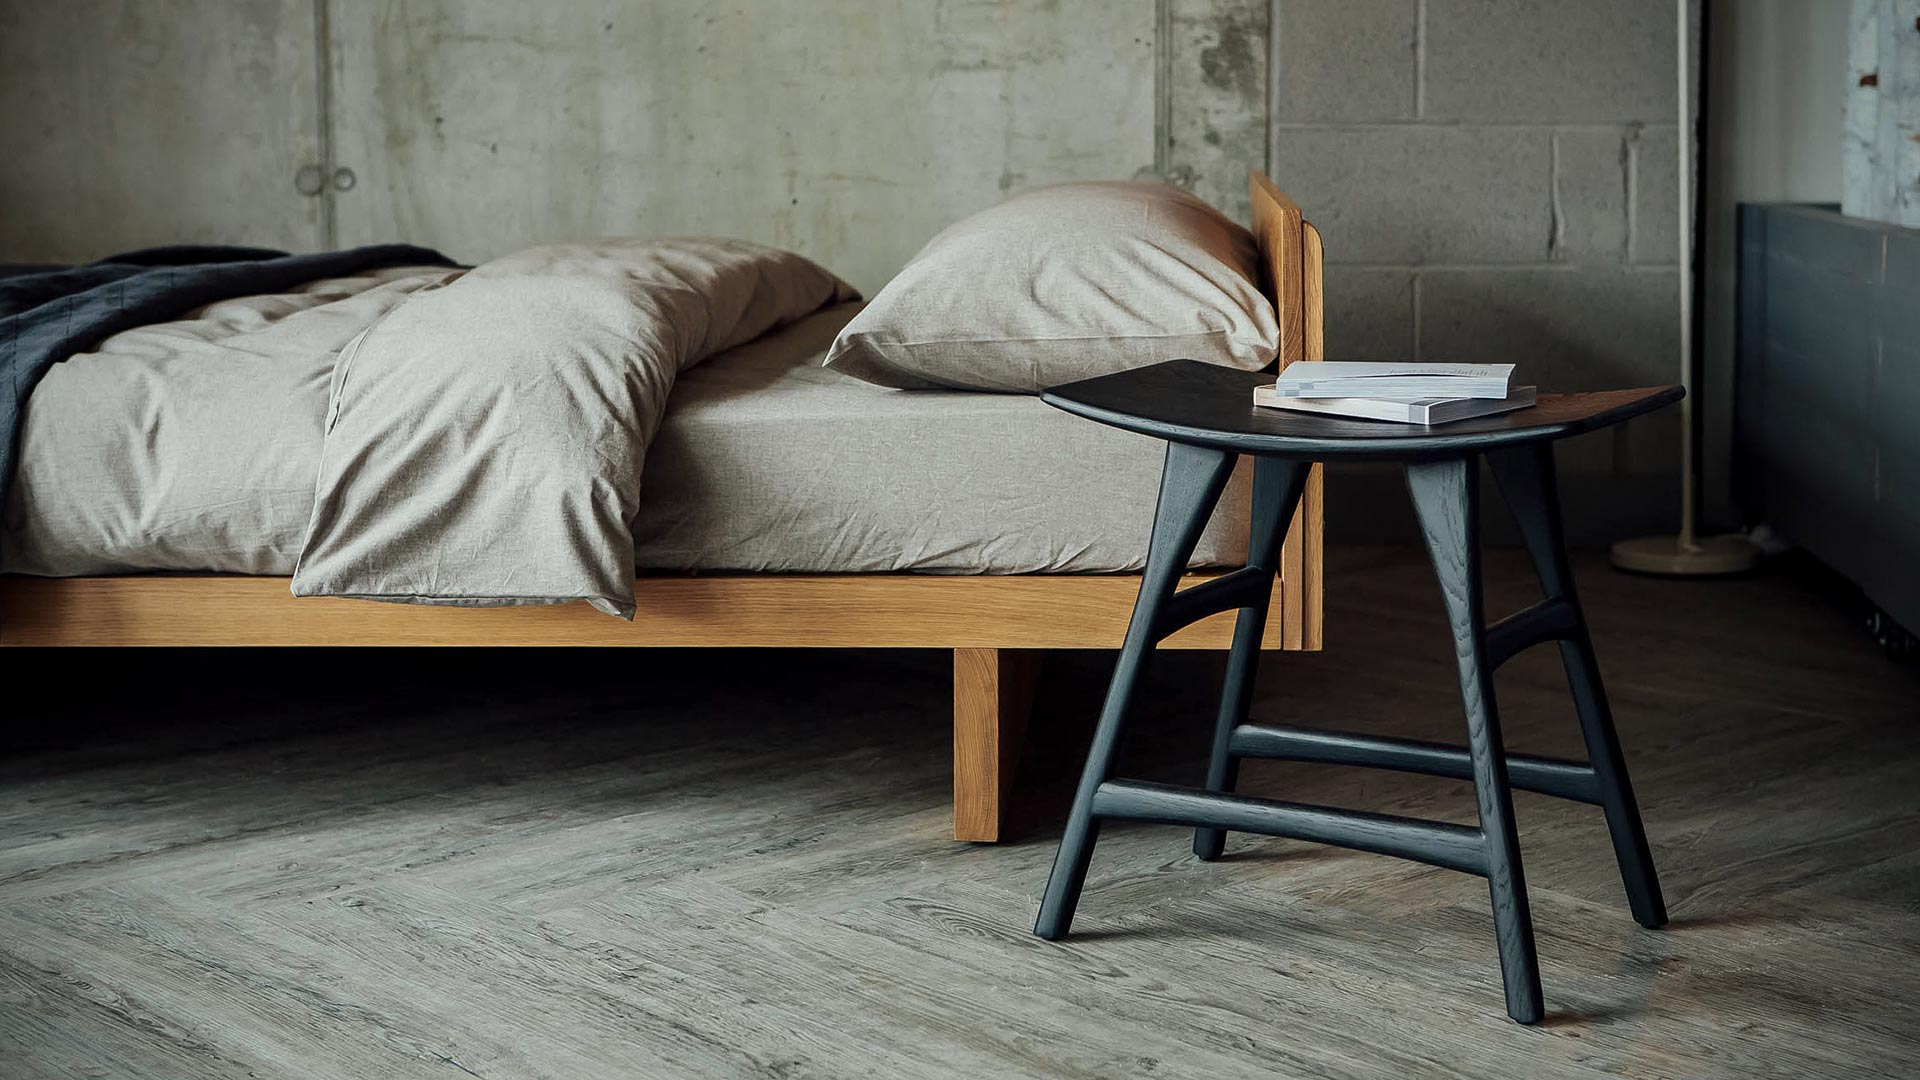 Japanese Inspired Beds Kyoto Bed Collection Japanese Inspired Beds Natural Bed Company